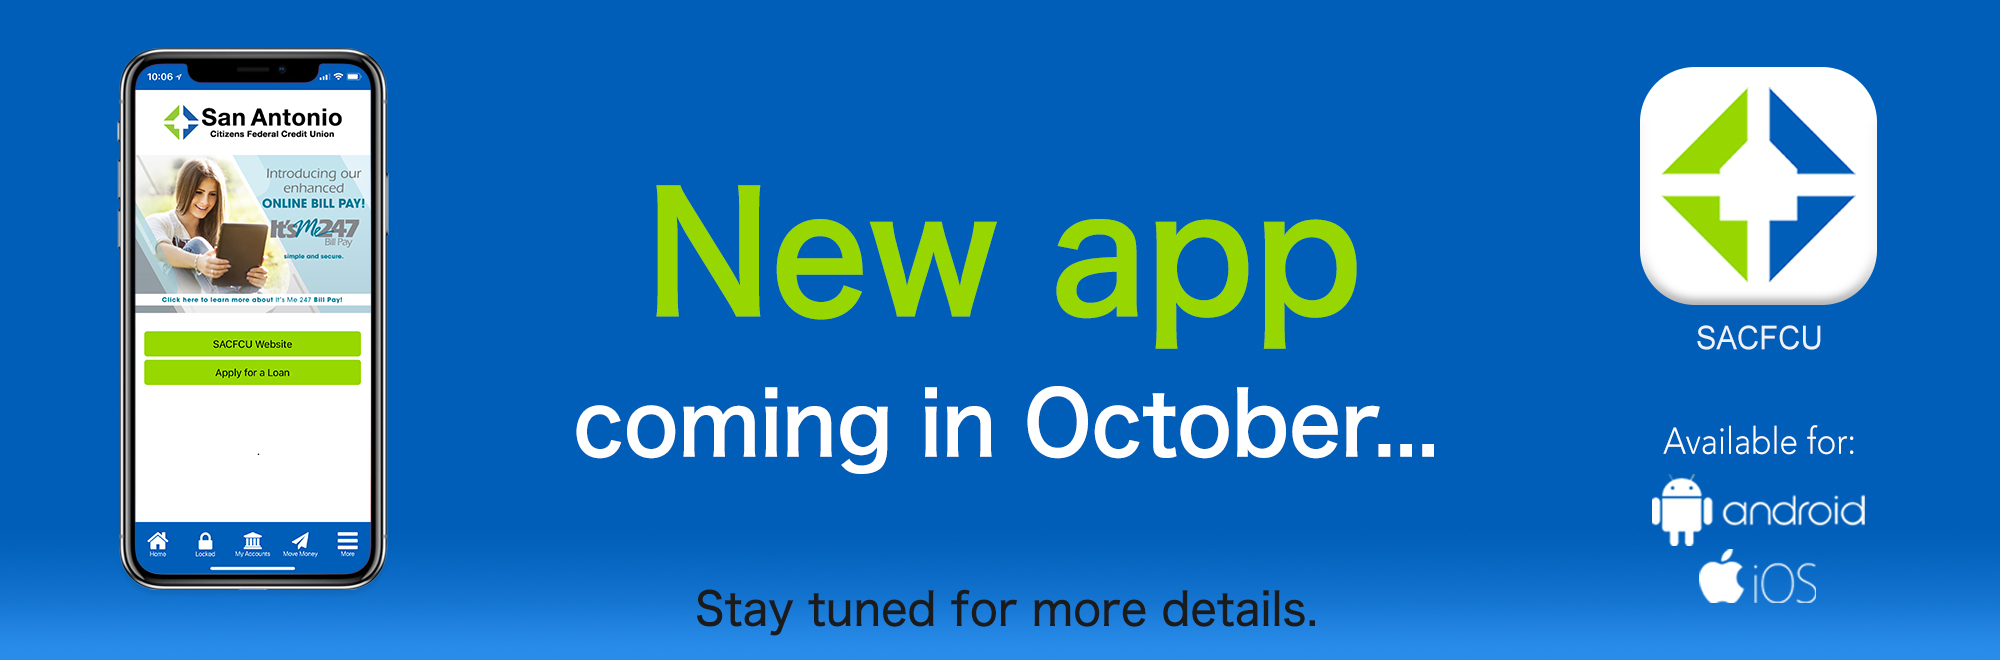 SACFCU has a new mobile app coming in October! Stay tuned for more details.